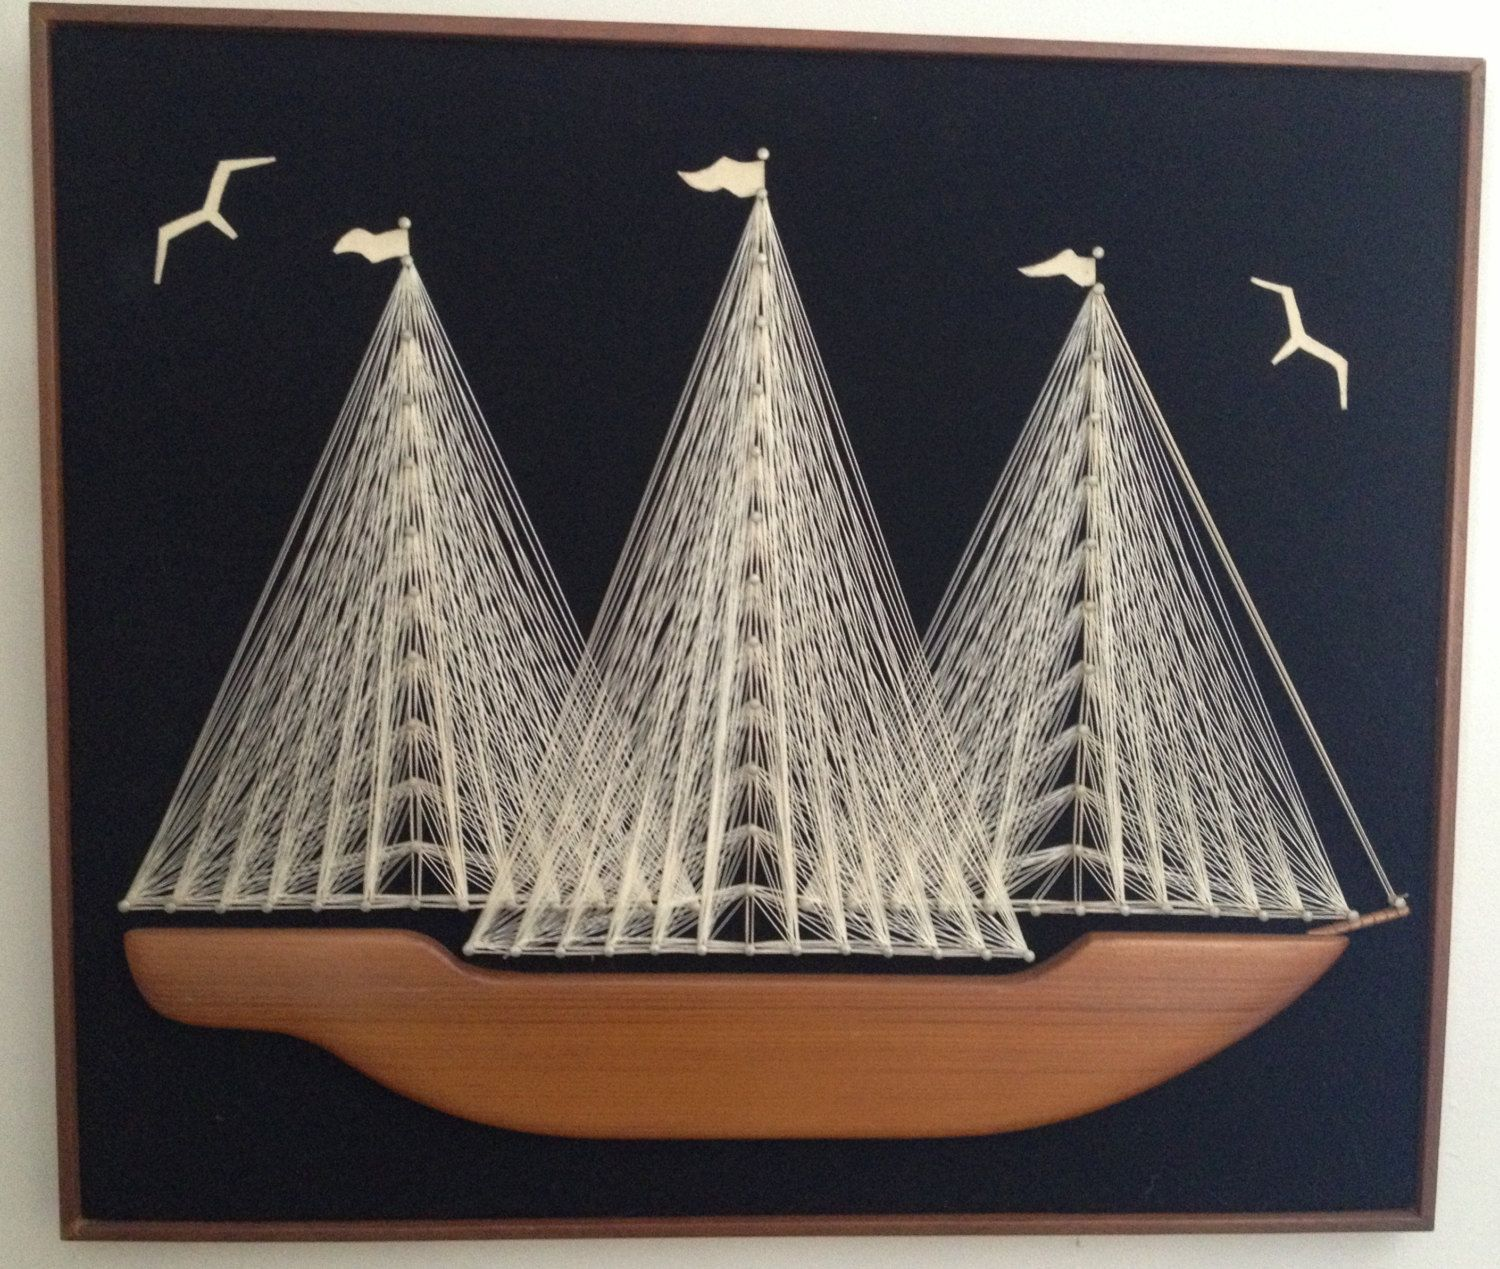 S sailboat string art with real wood hull mid century wall